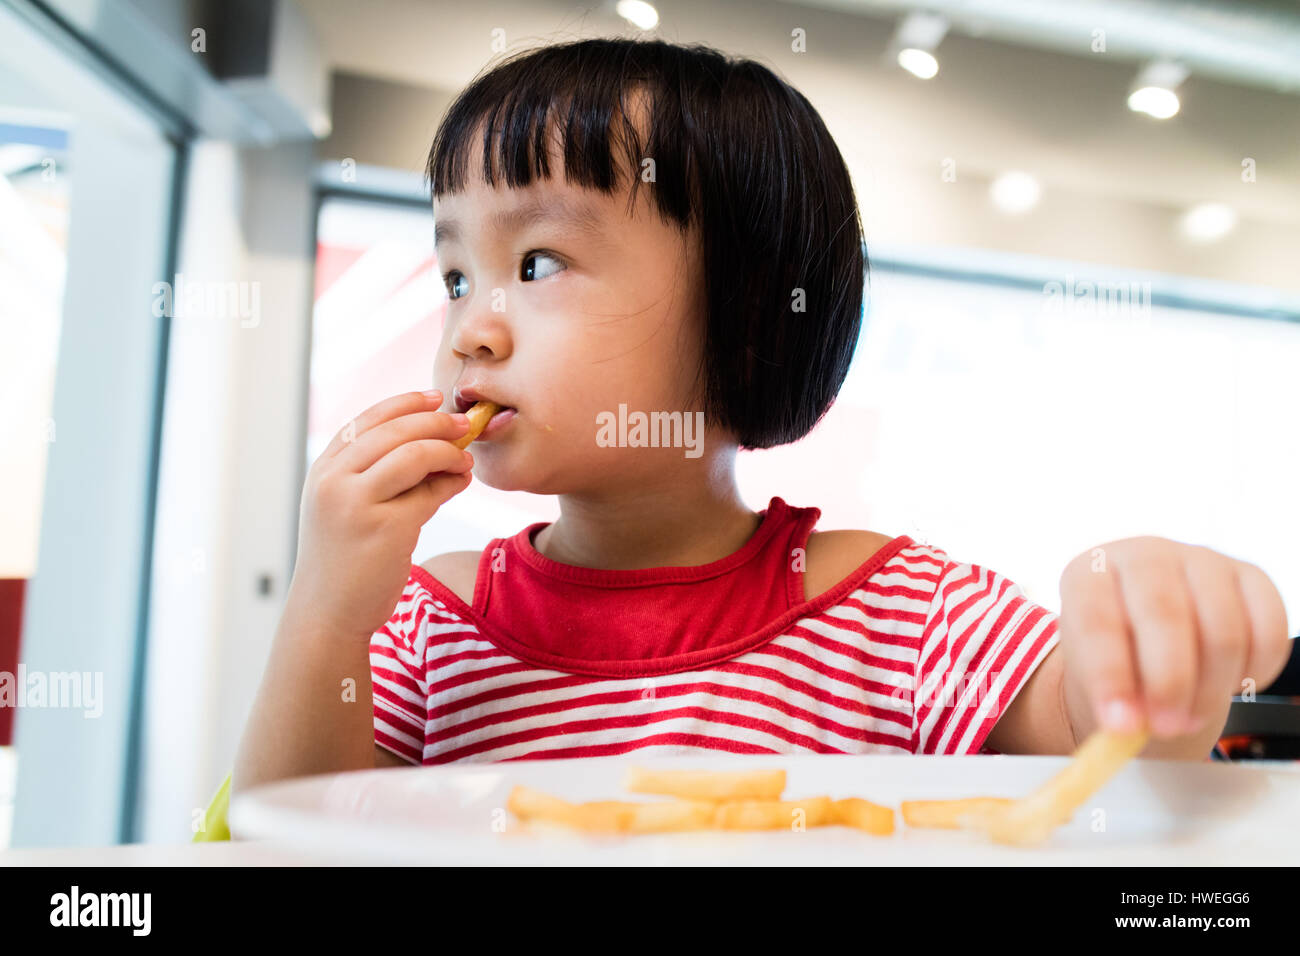 Asian Chinese little girl eating french fries at restaurant. - Stock Image